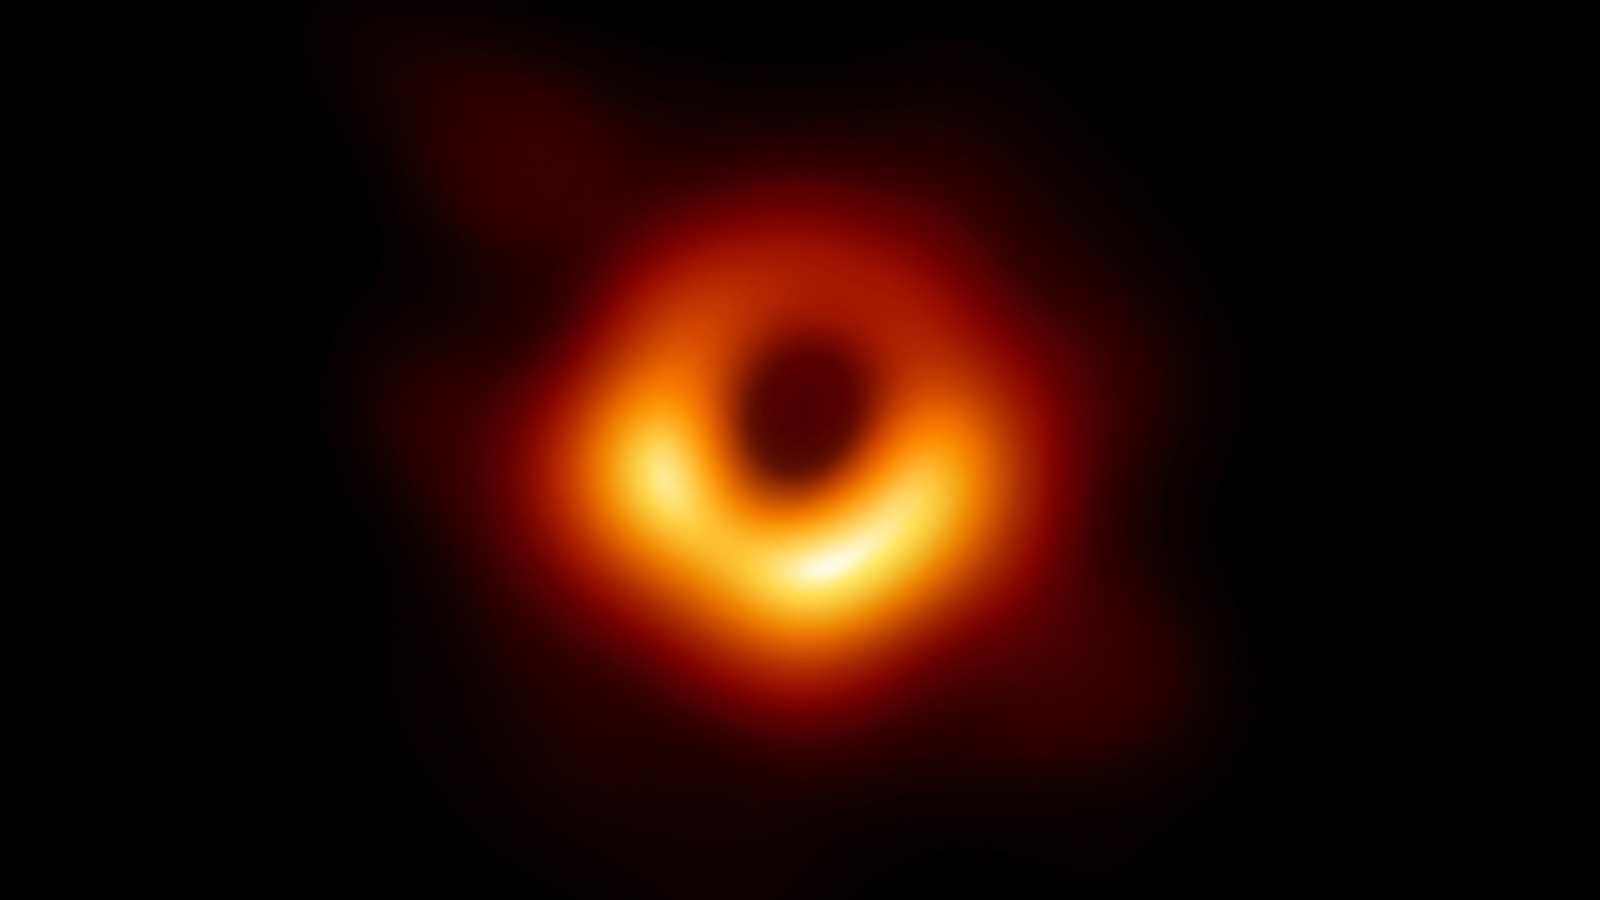 The Event Horizon Telescope's image of the black hole at the center of Messier 87, a large galaxy in the Virgo cluster. This black hole resides 55 million light-years from Earth and has a mass 6.5 billion times that of the sun.